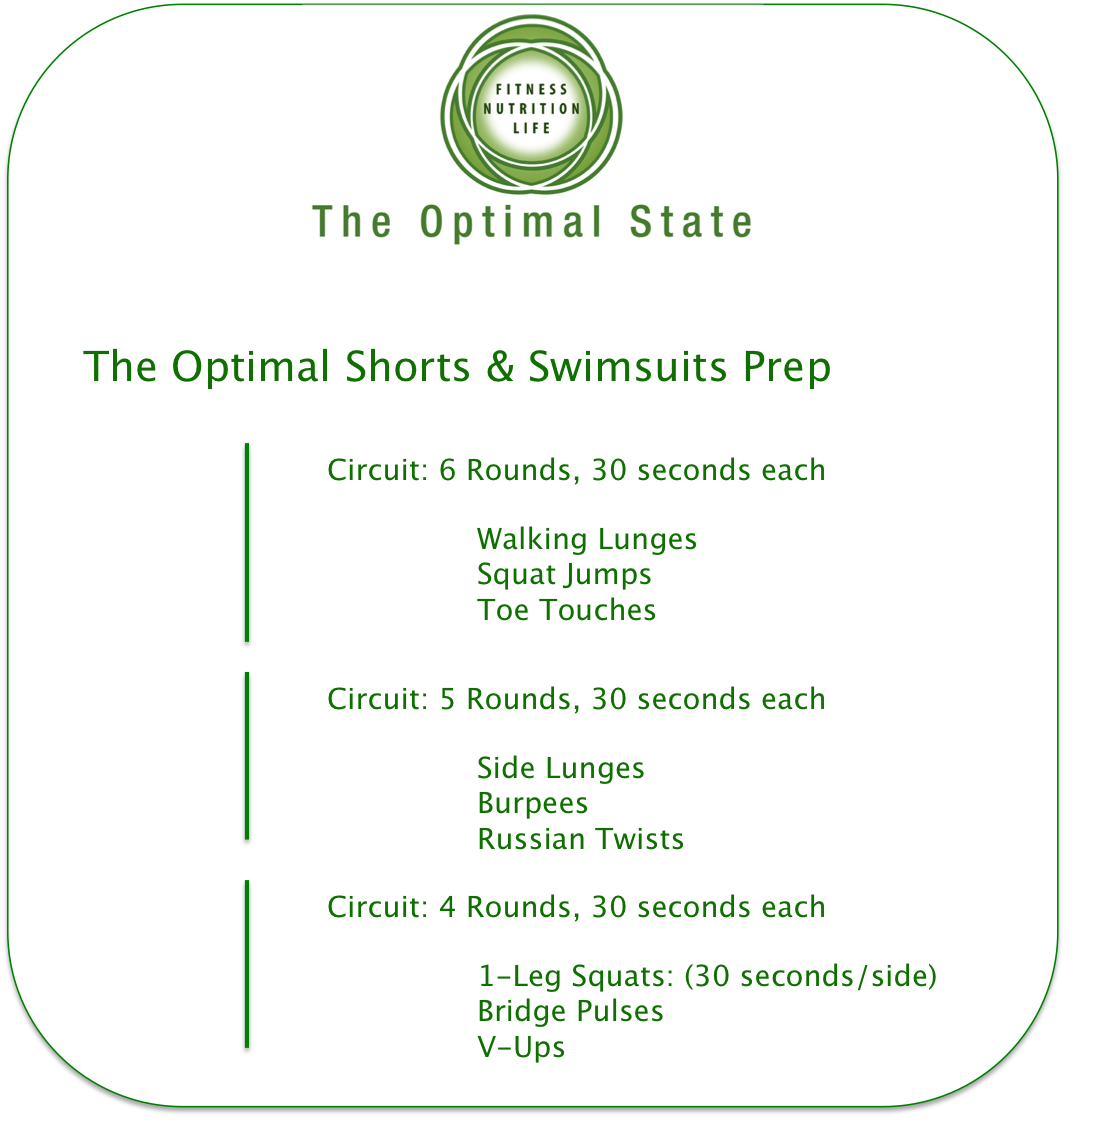 Shorts and Swimsuits season is right around the corner so get to work on those legs and abs!